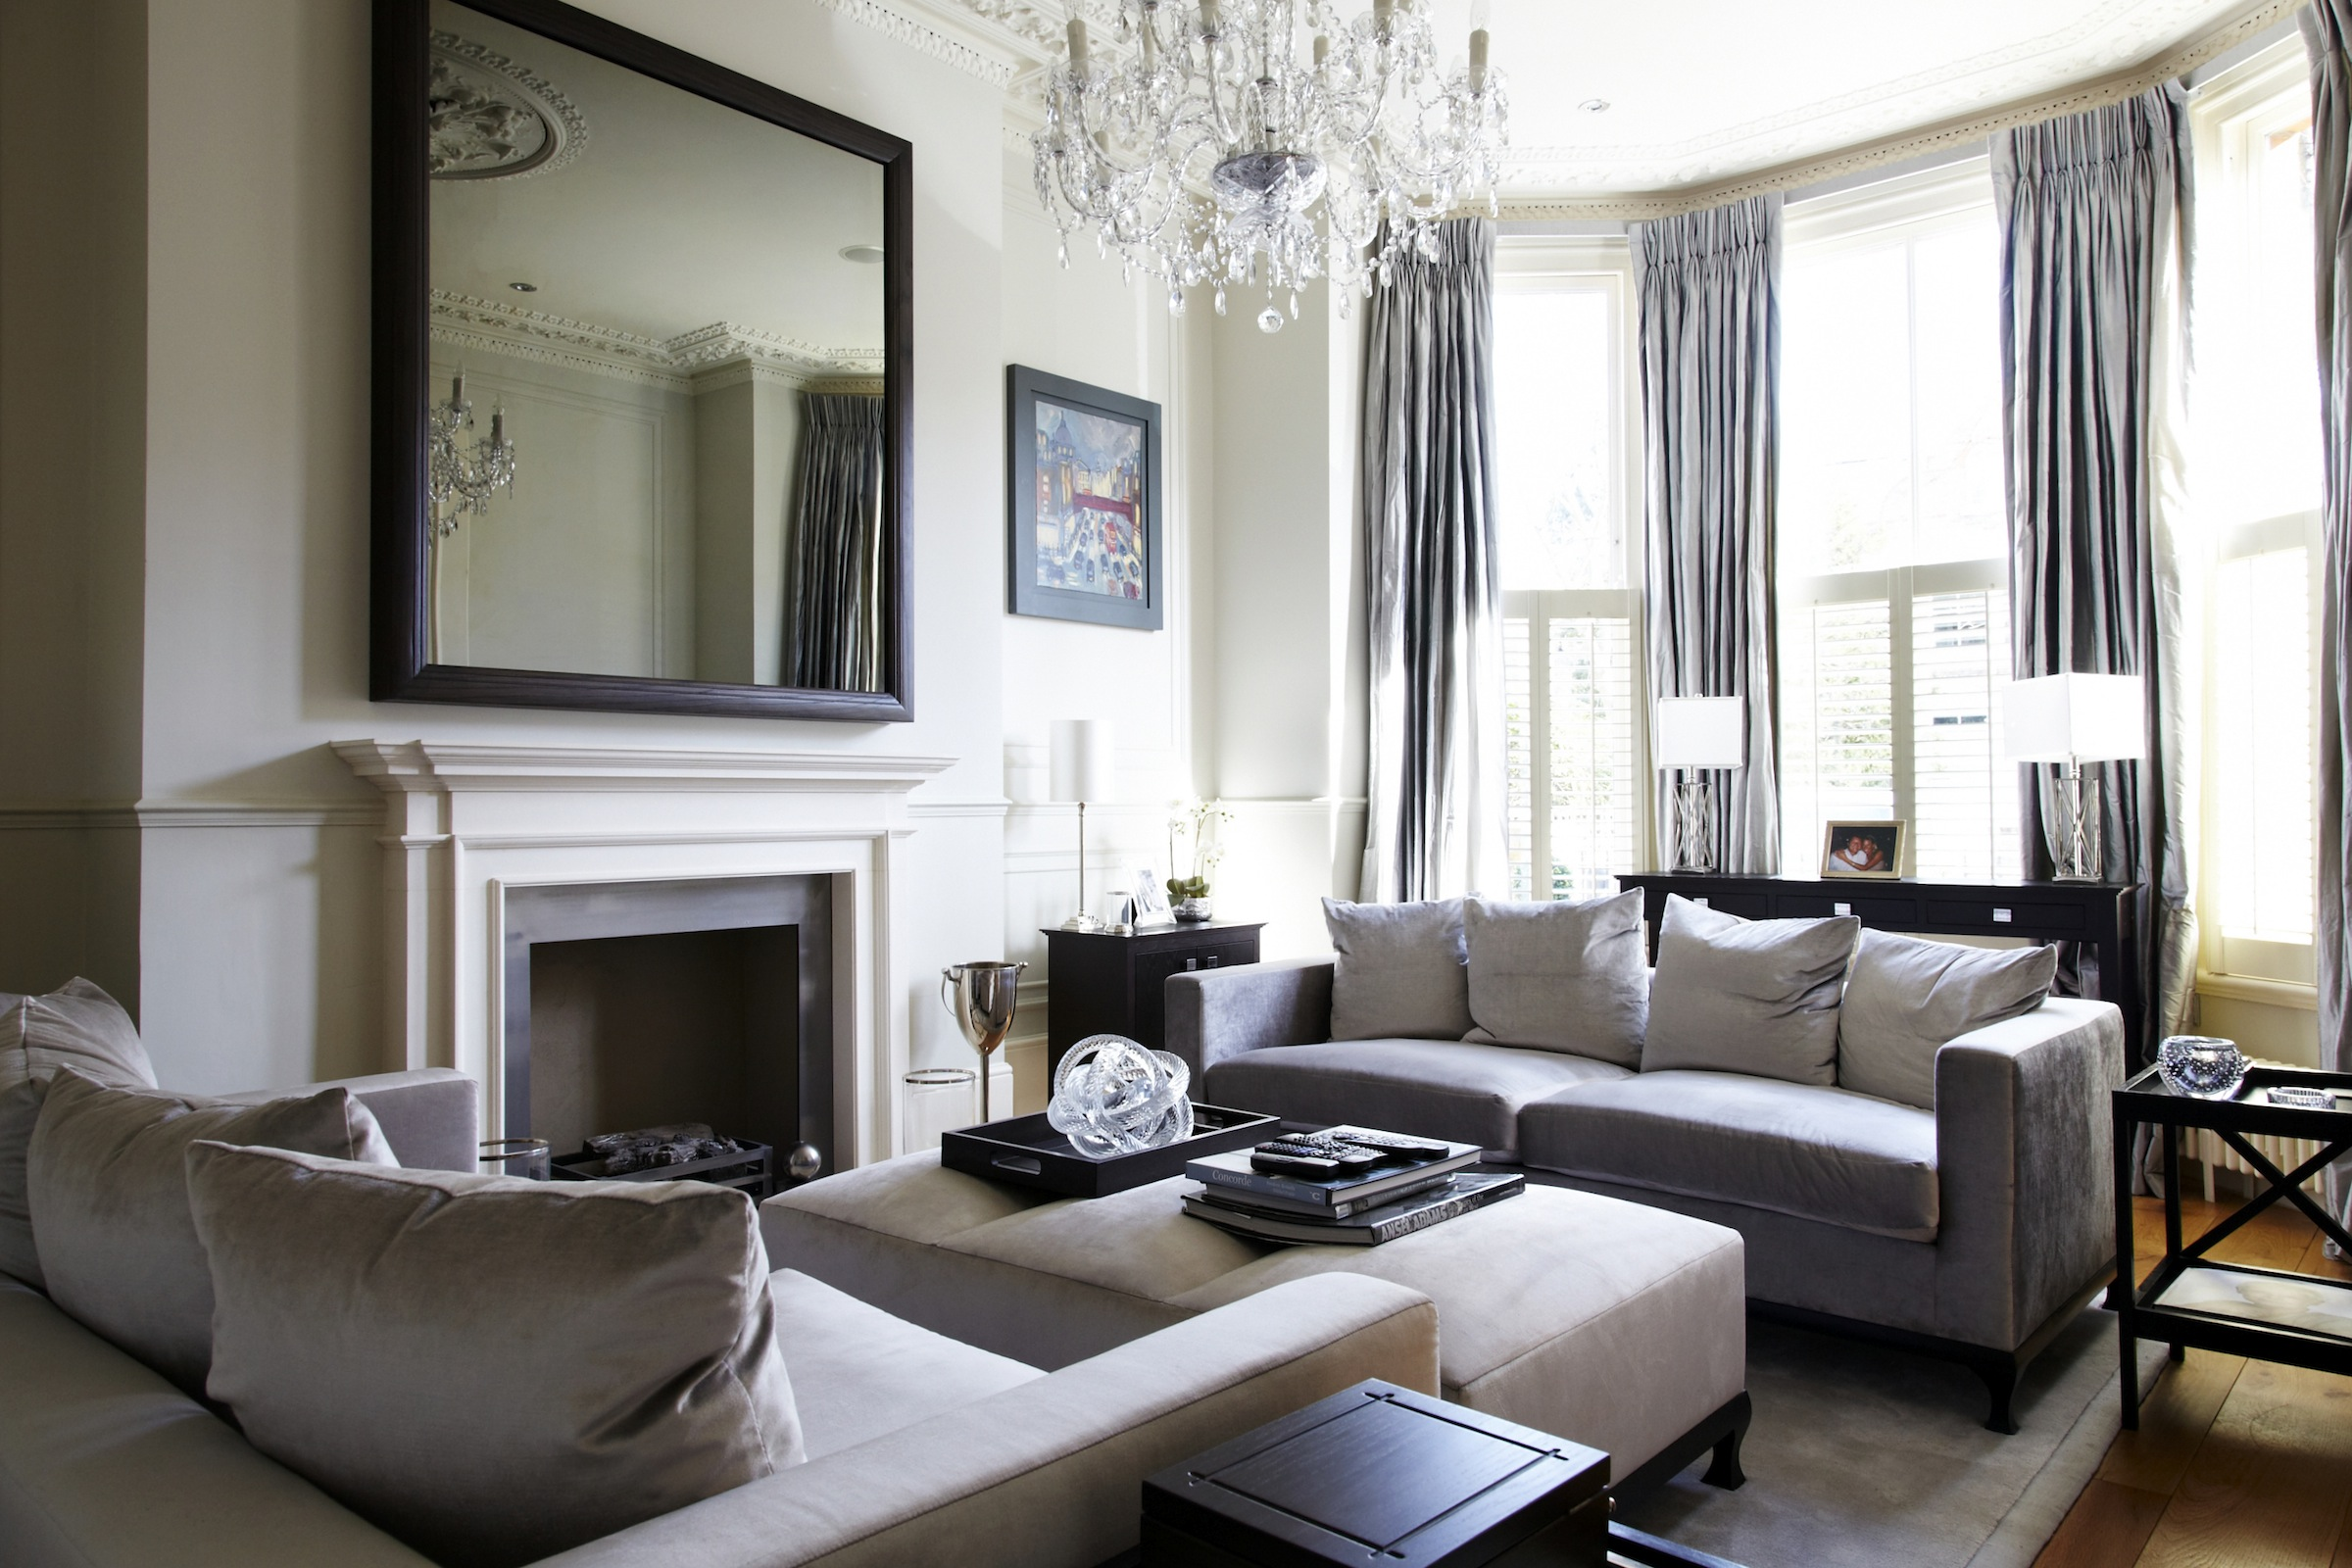 We have assembled our favorite small living room ideas to help make your room feel more spacious